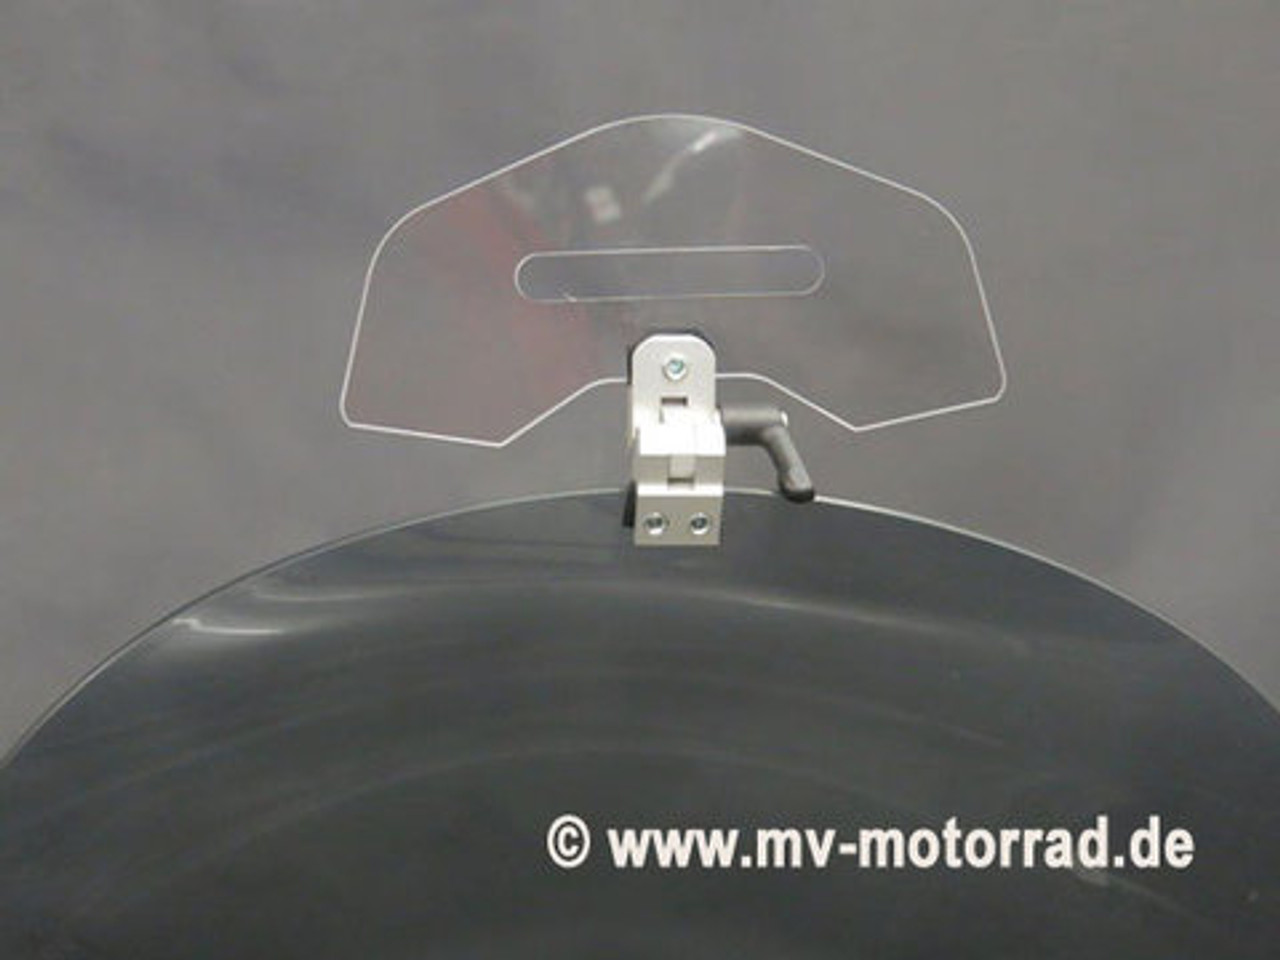 Top Air Shield - Extends for Windscreen EZ on and off